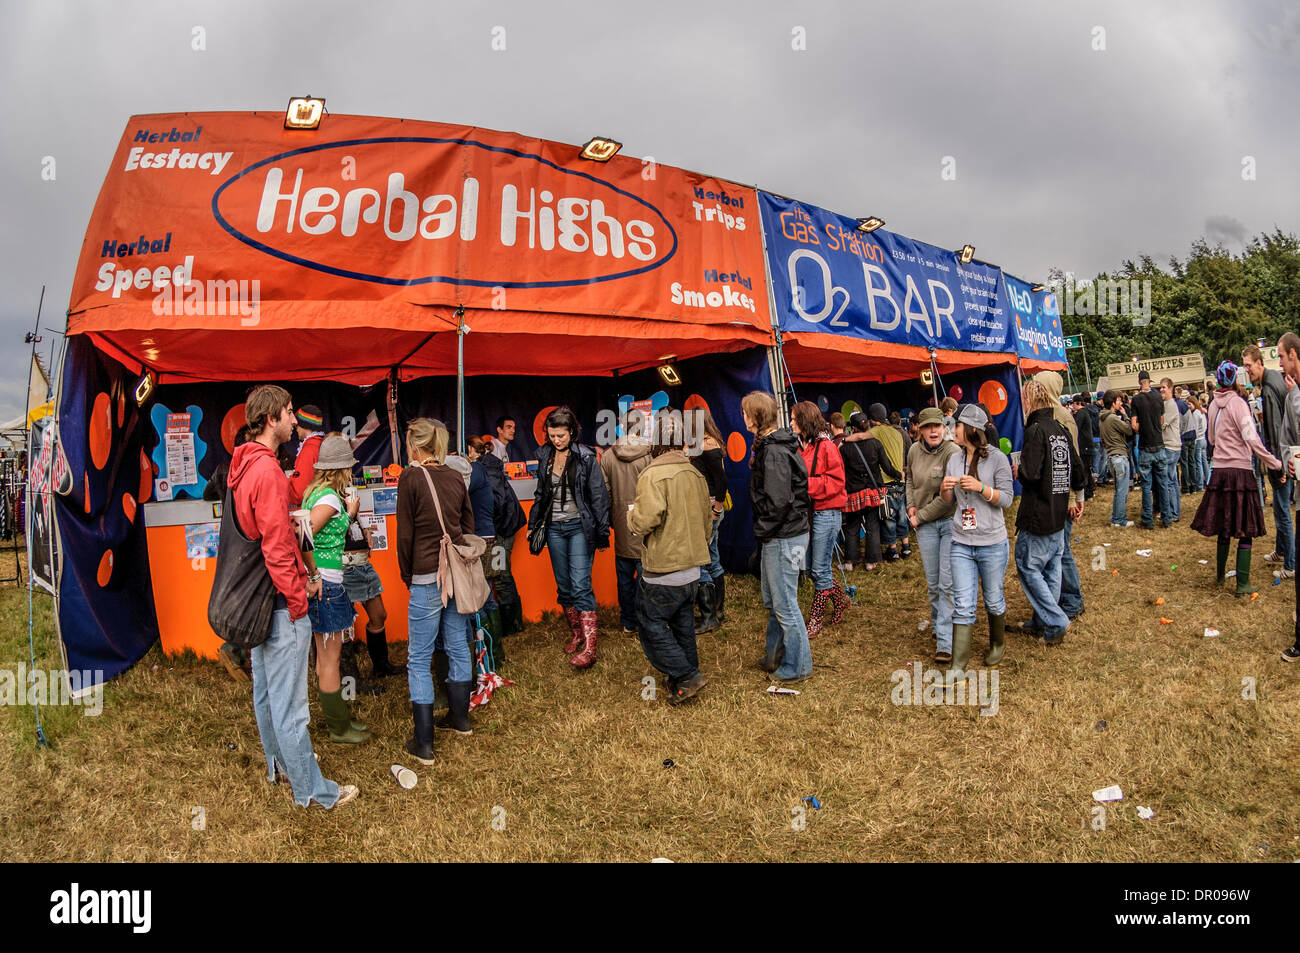 Buy herbal highs - Herbal Highs And Oxygen Bar At Music Festival